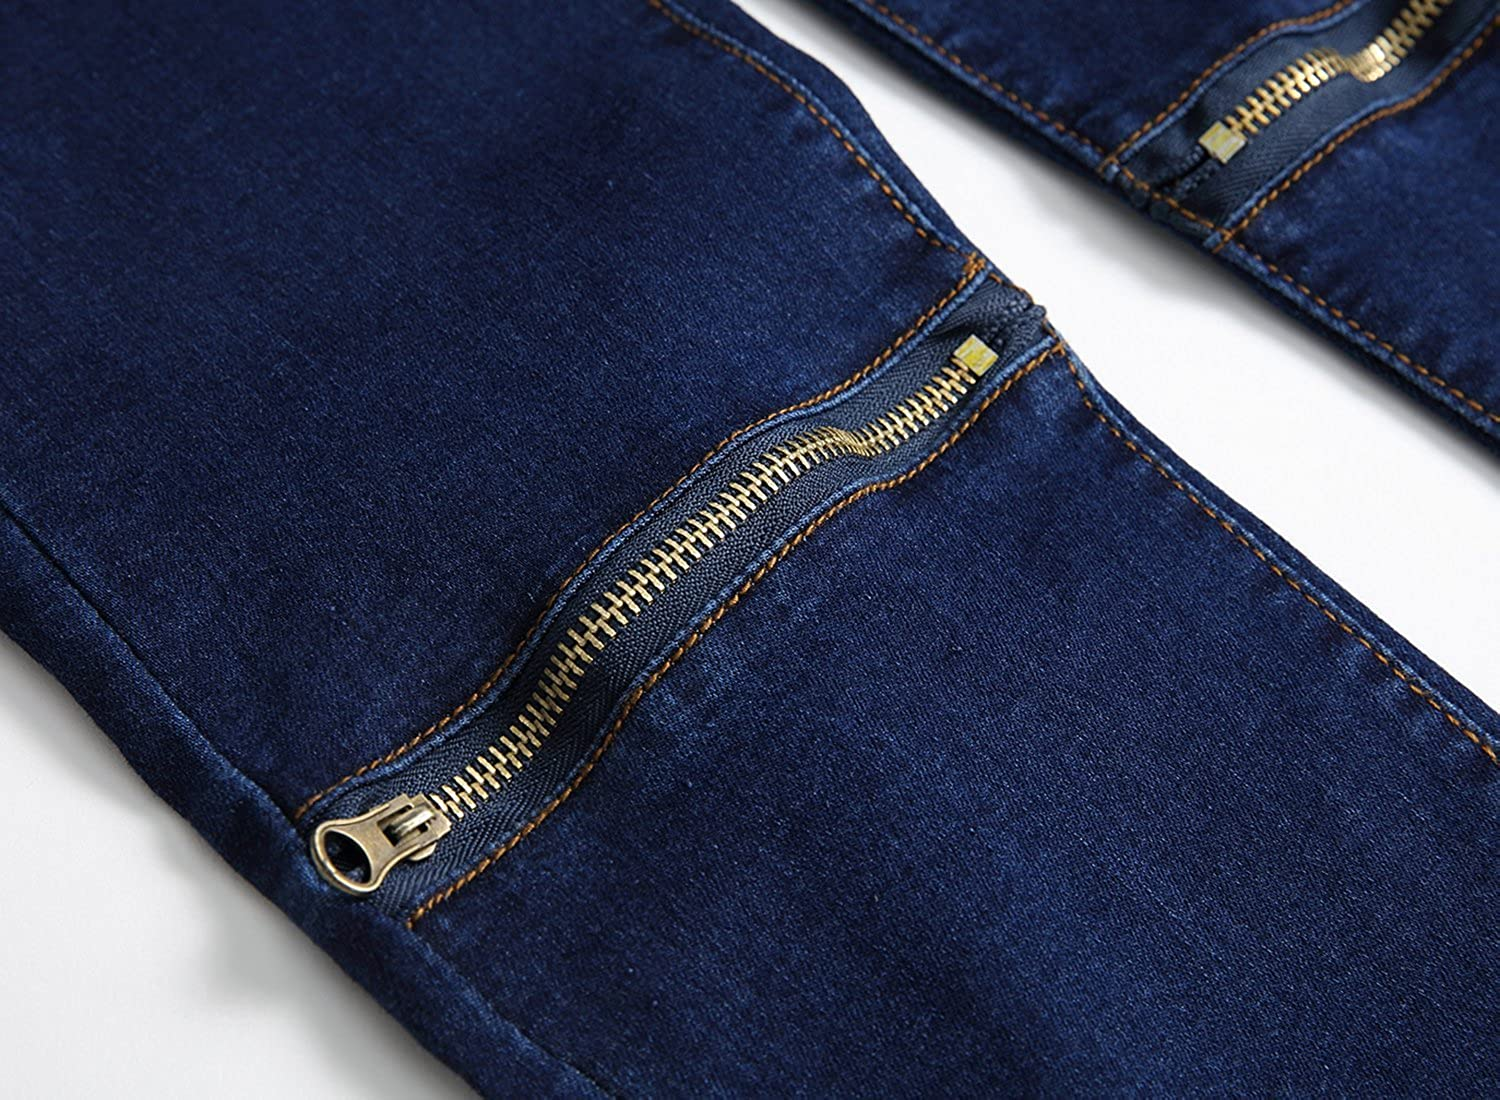 fa732dd36224 Fredd Marshall Boy's Slim Fit Skinny Ripped Distressed Zipper Jeans Pants  with Holes: Amazon.co.uk: Clothing